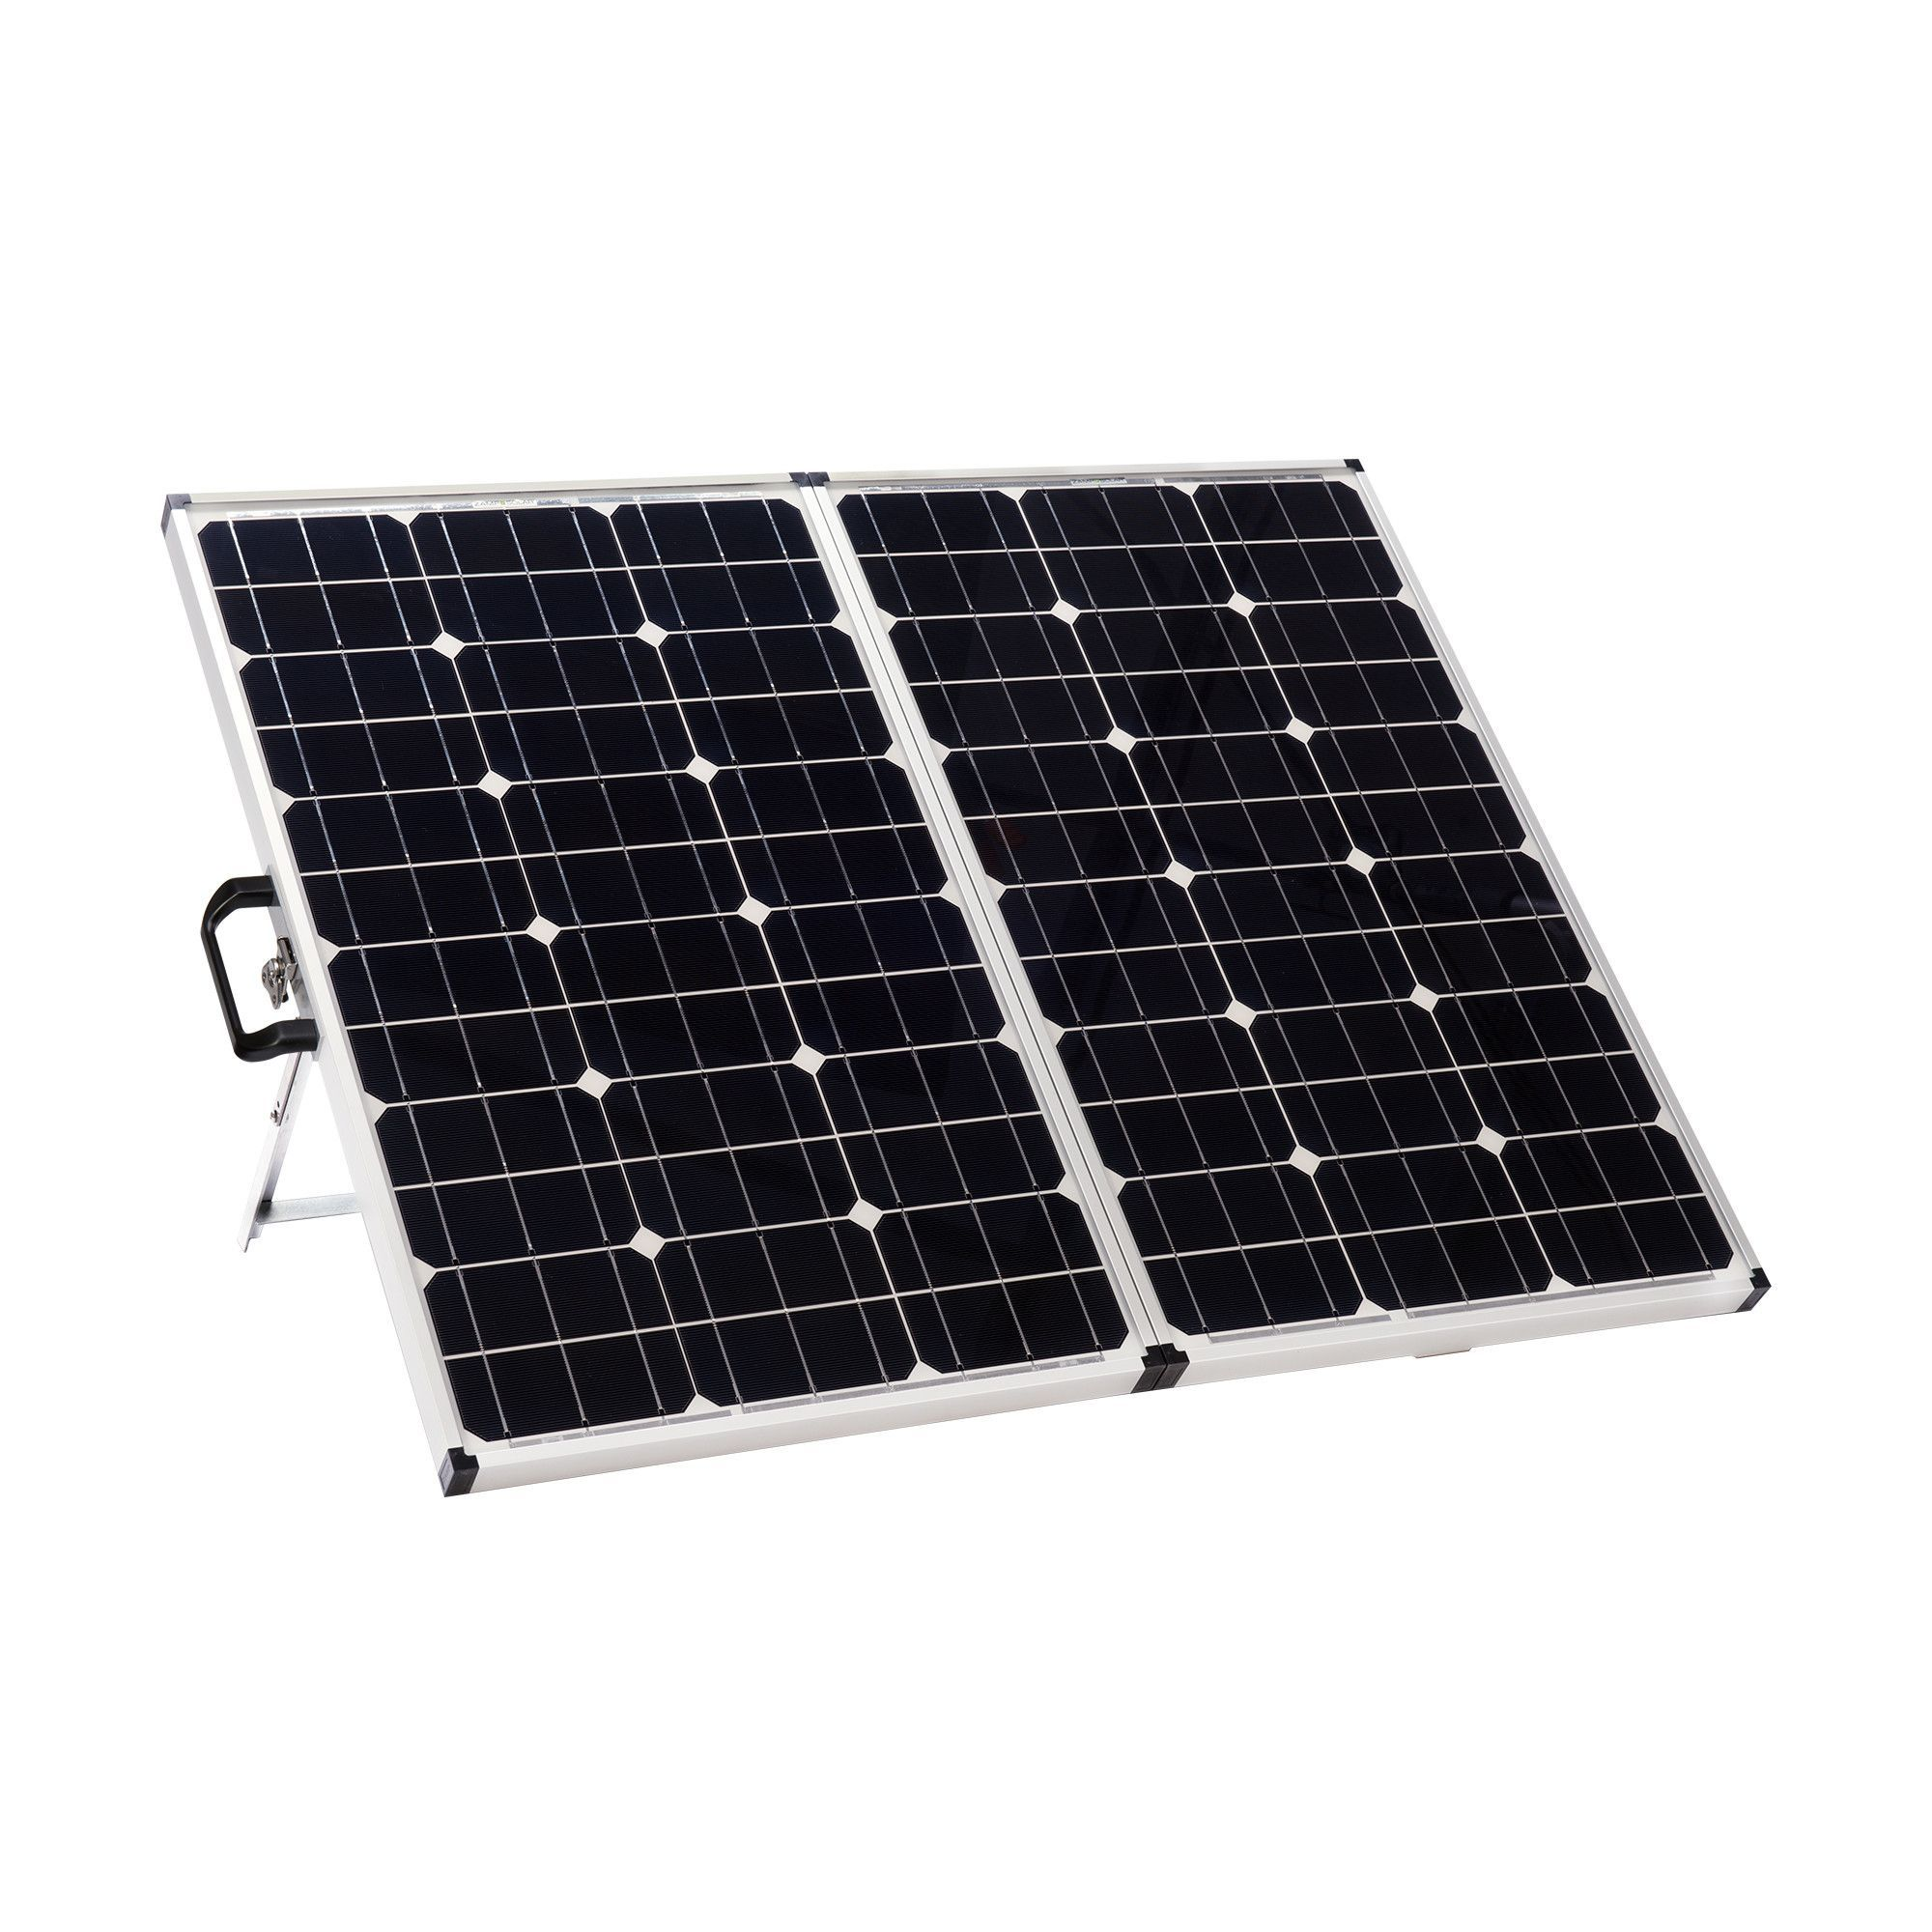 Browse Solar Products Like The Zamp Solar Portable Charging System 120w Online Shop Teardrop Shop For More Great Zamp Sol Best Solar Panels Solar Panels Solar